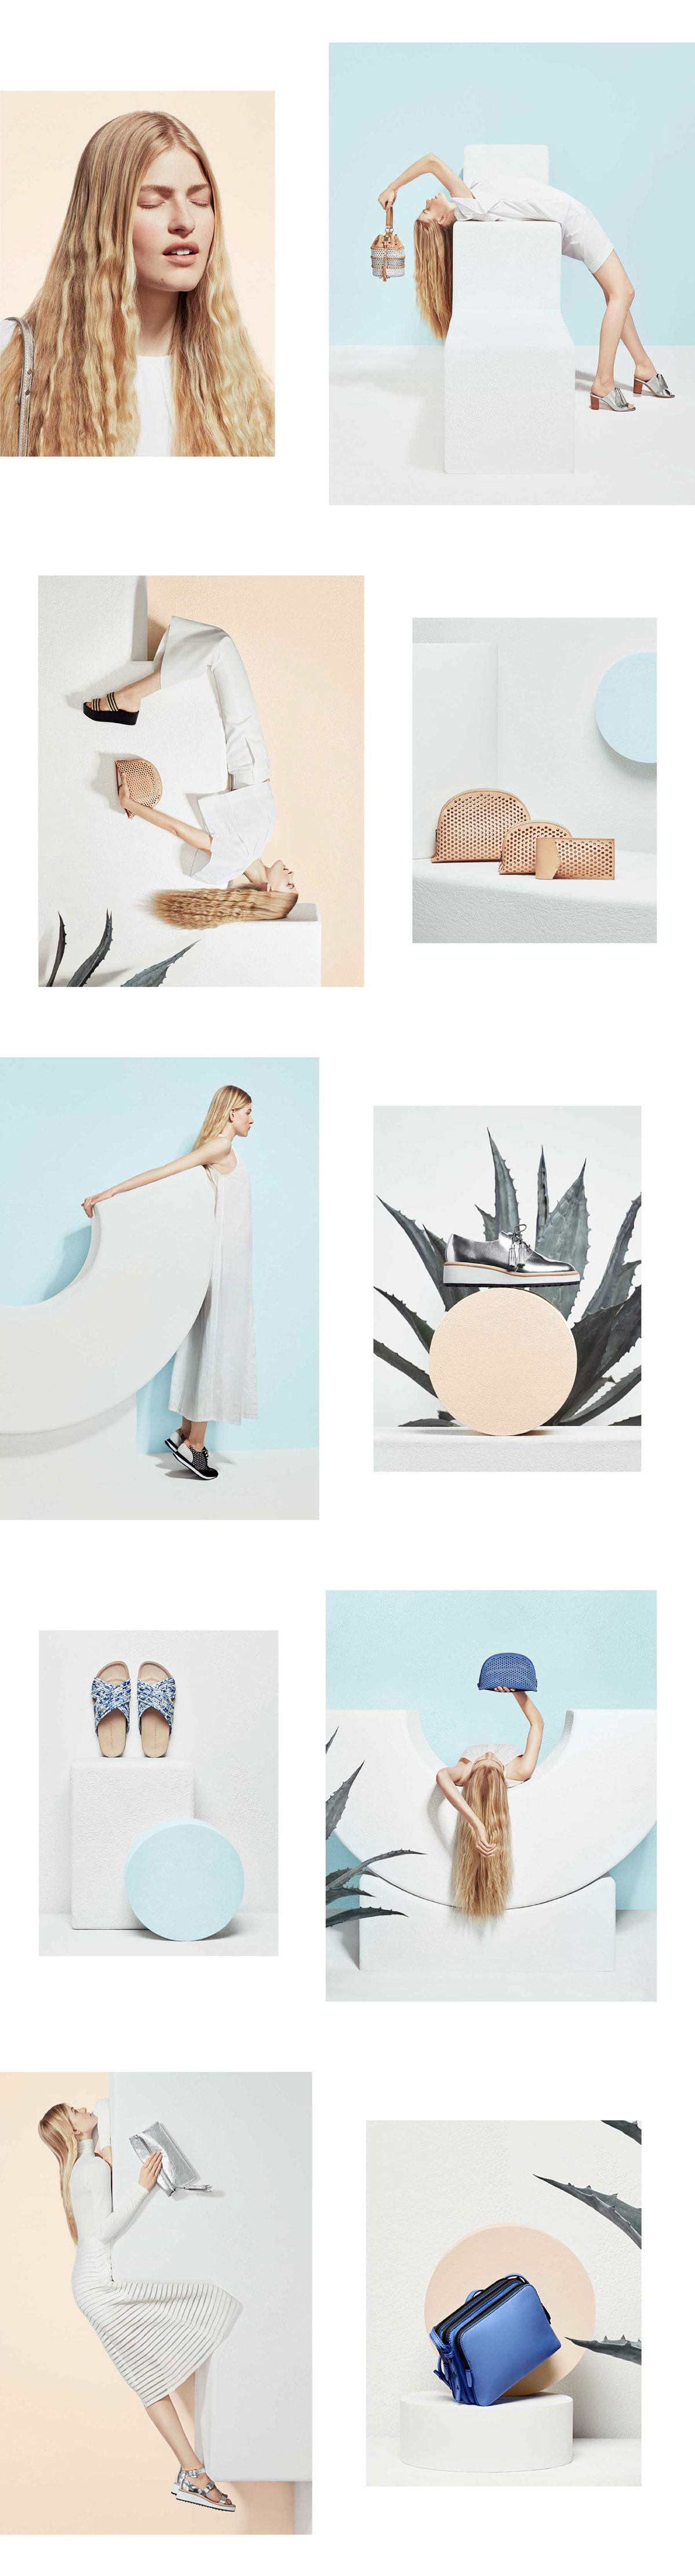 RoAndCo – Art Direction for Loeffler Randall #artdirection